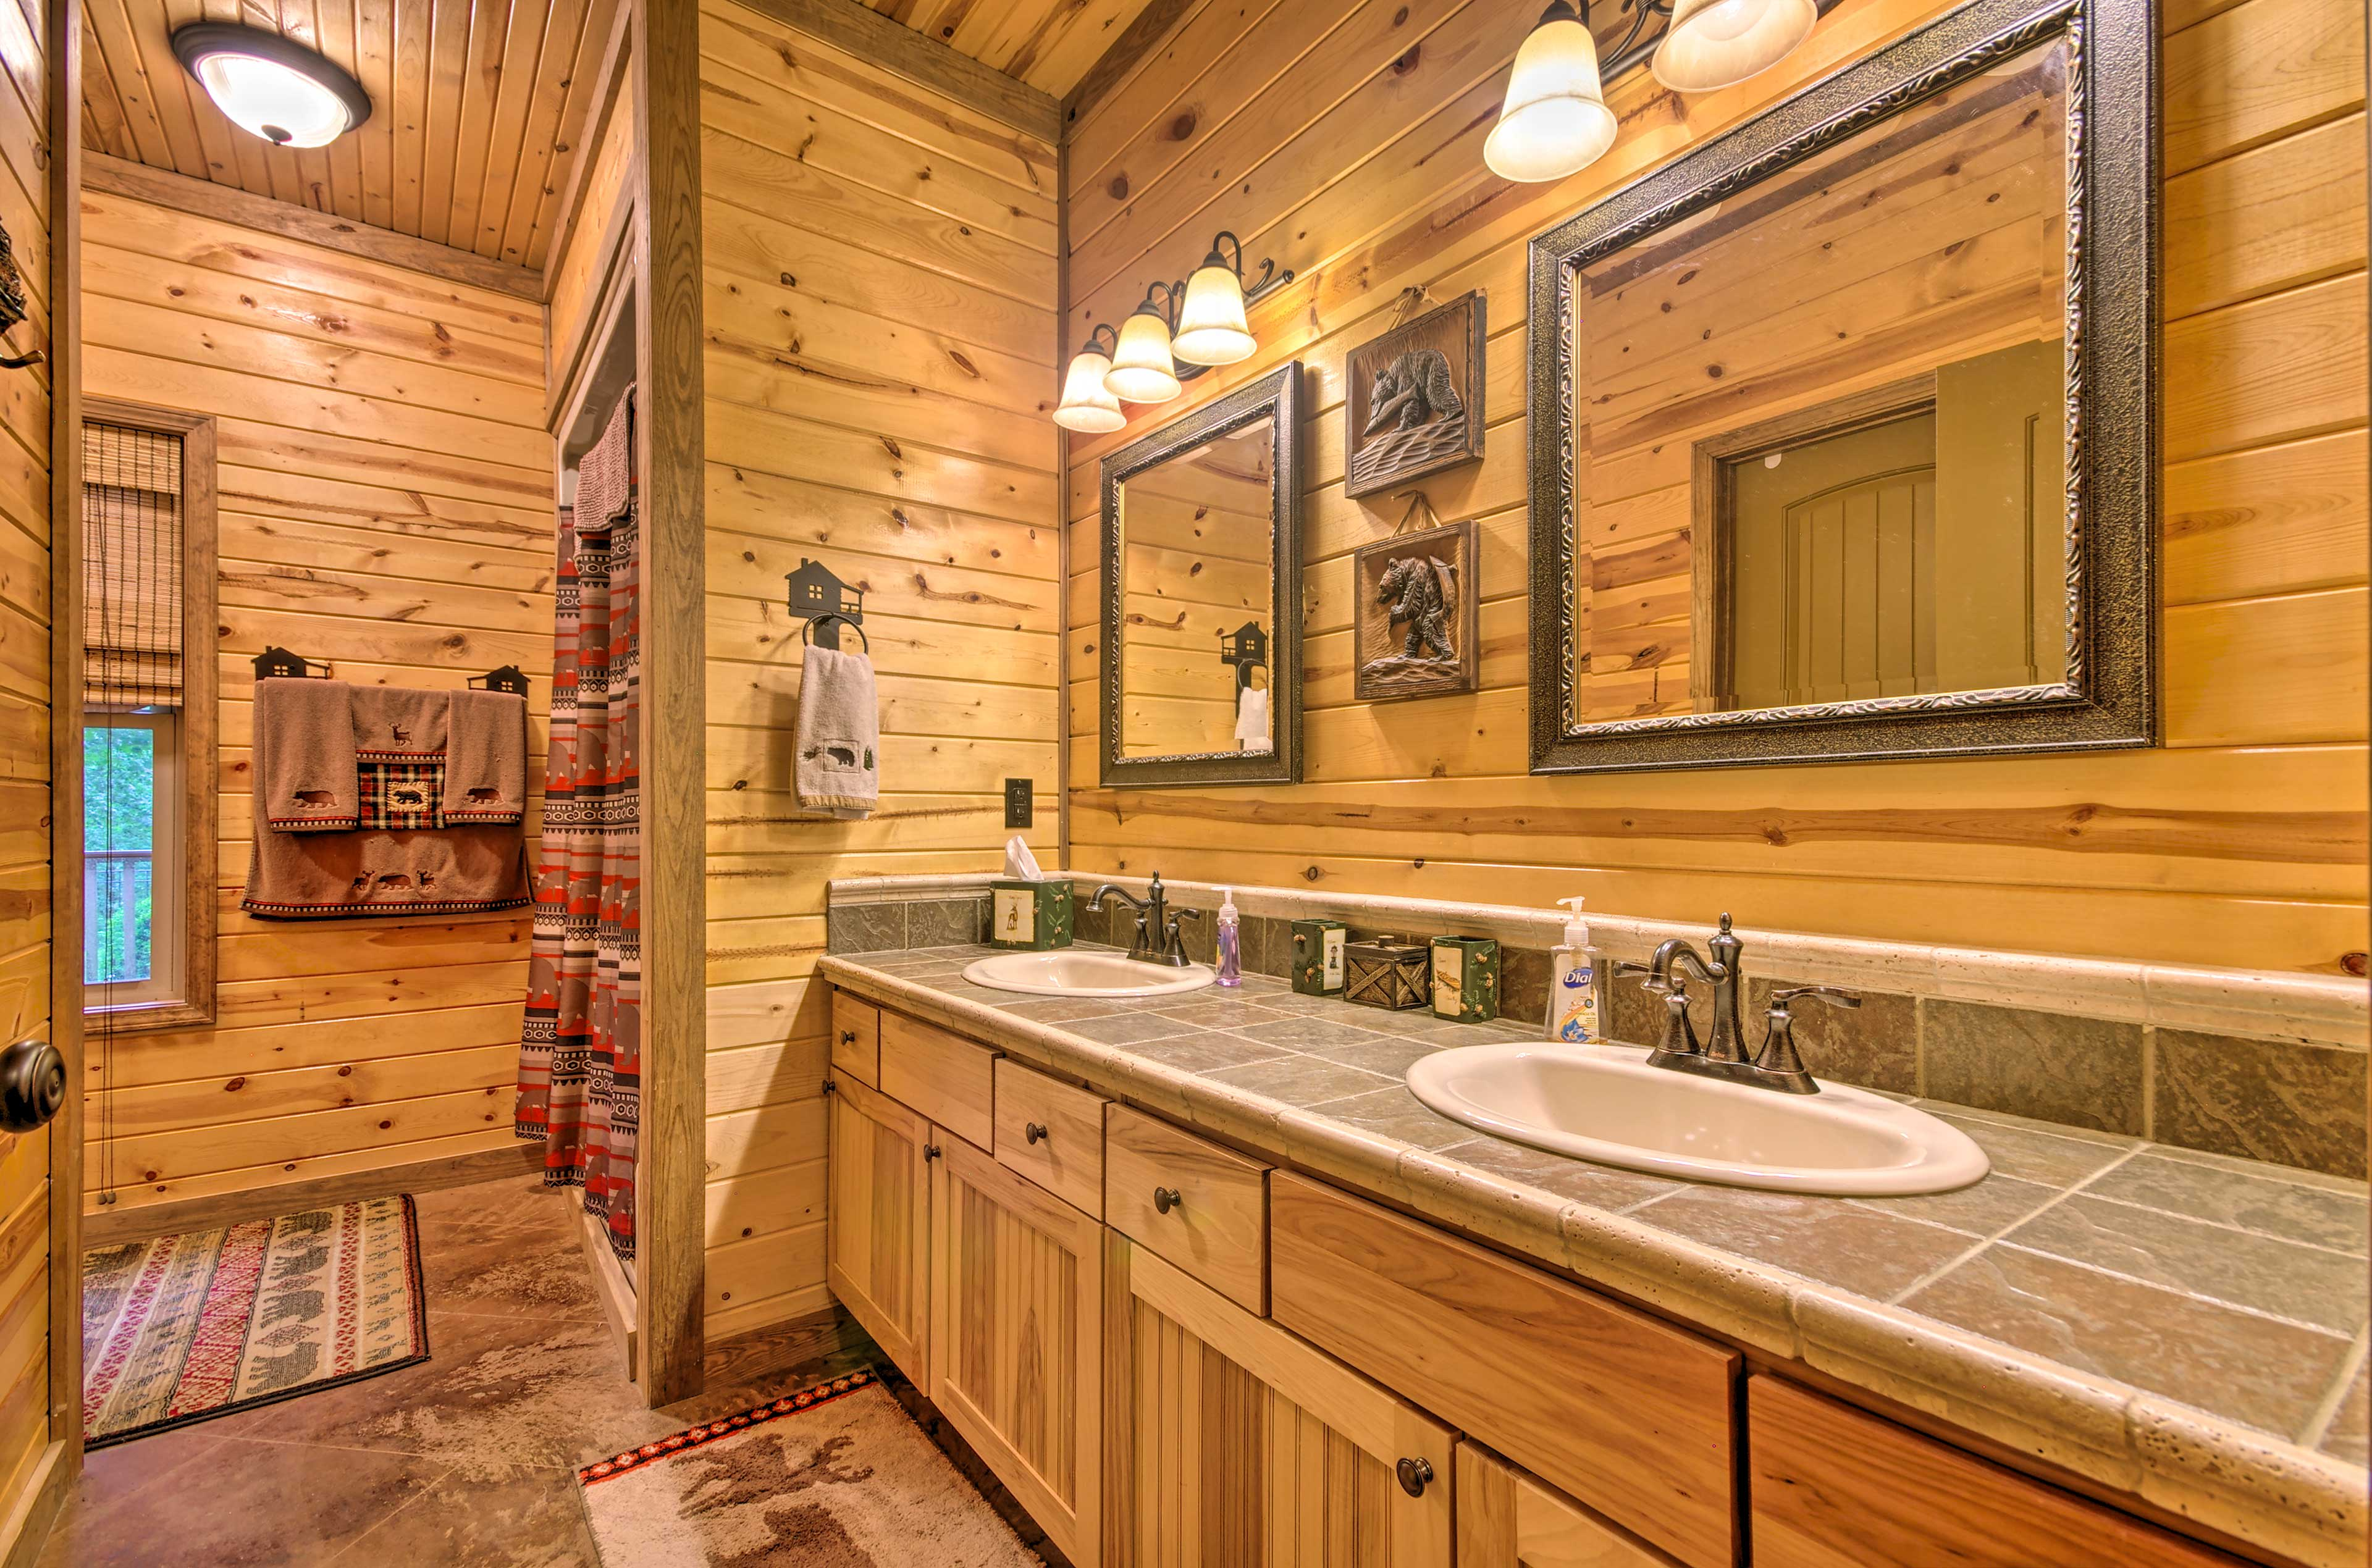 The master bathroom features dual sinks and a walk-in shower.